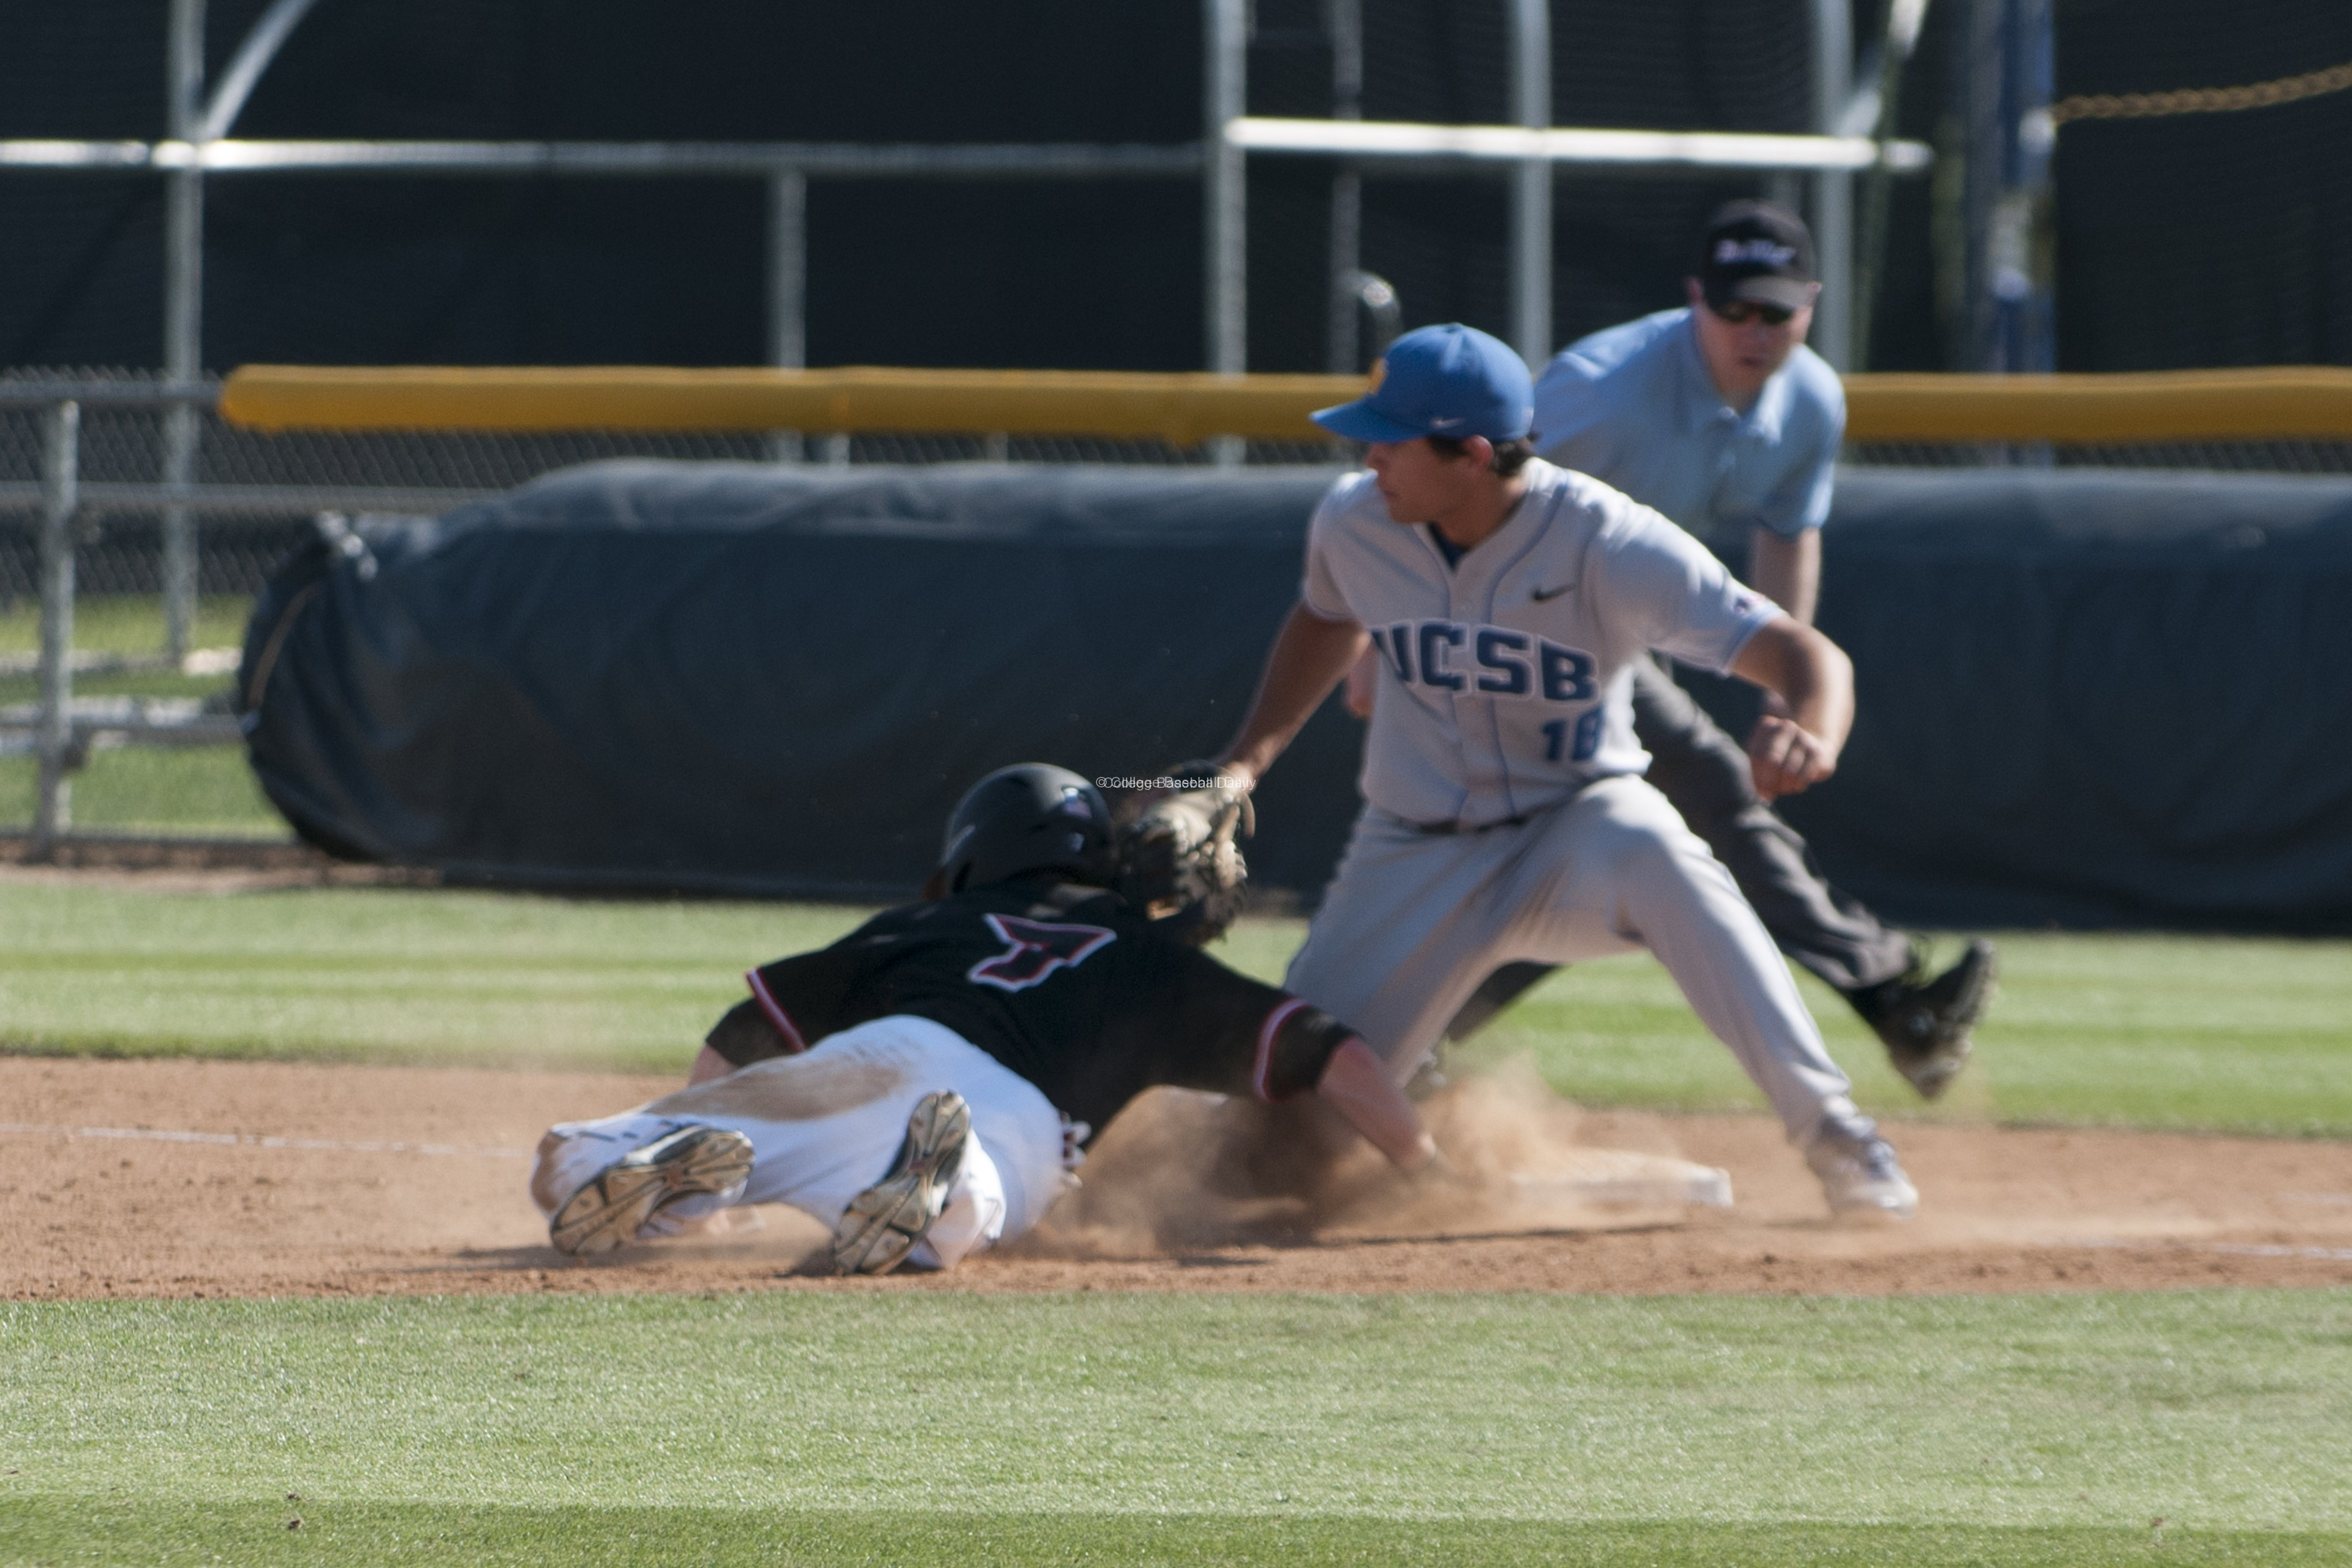 Tyler Kuresa tries to apply a tag.